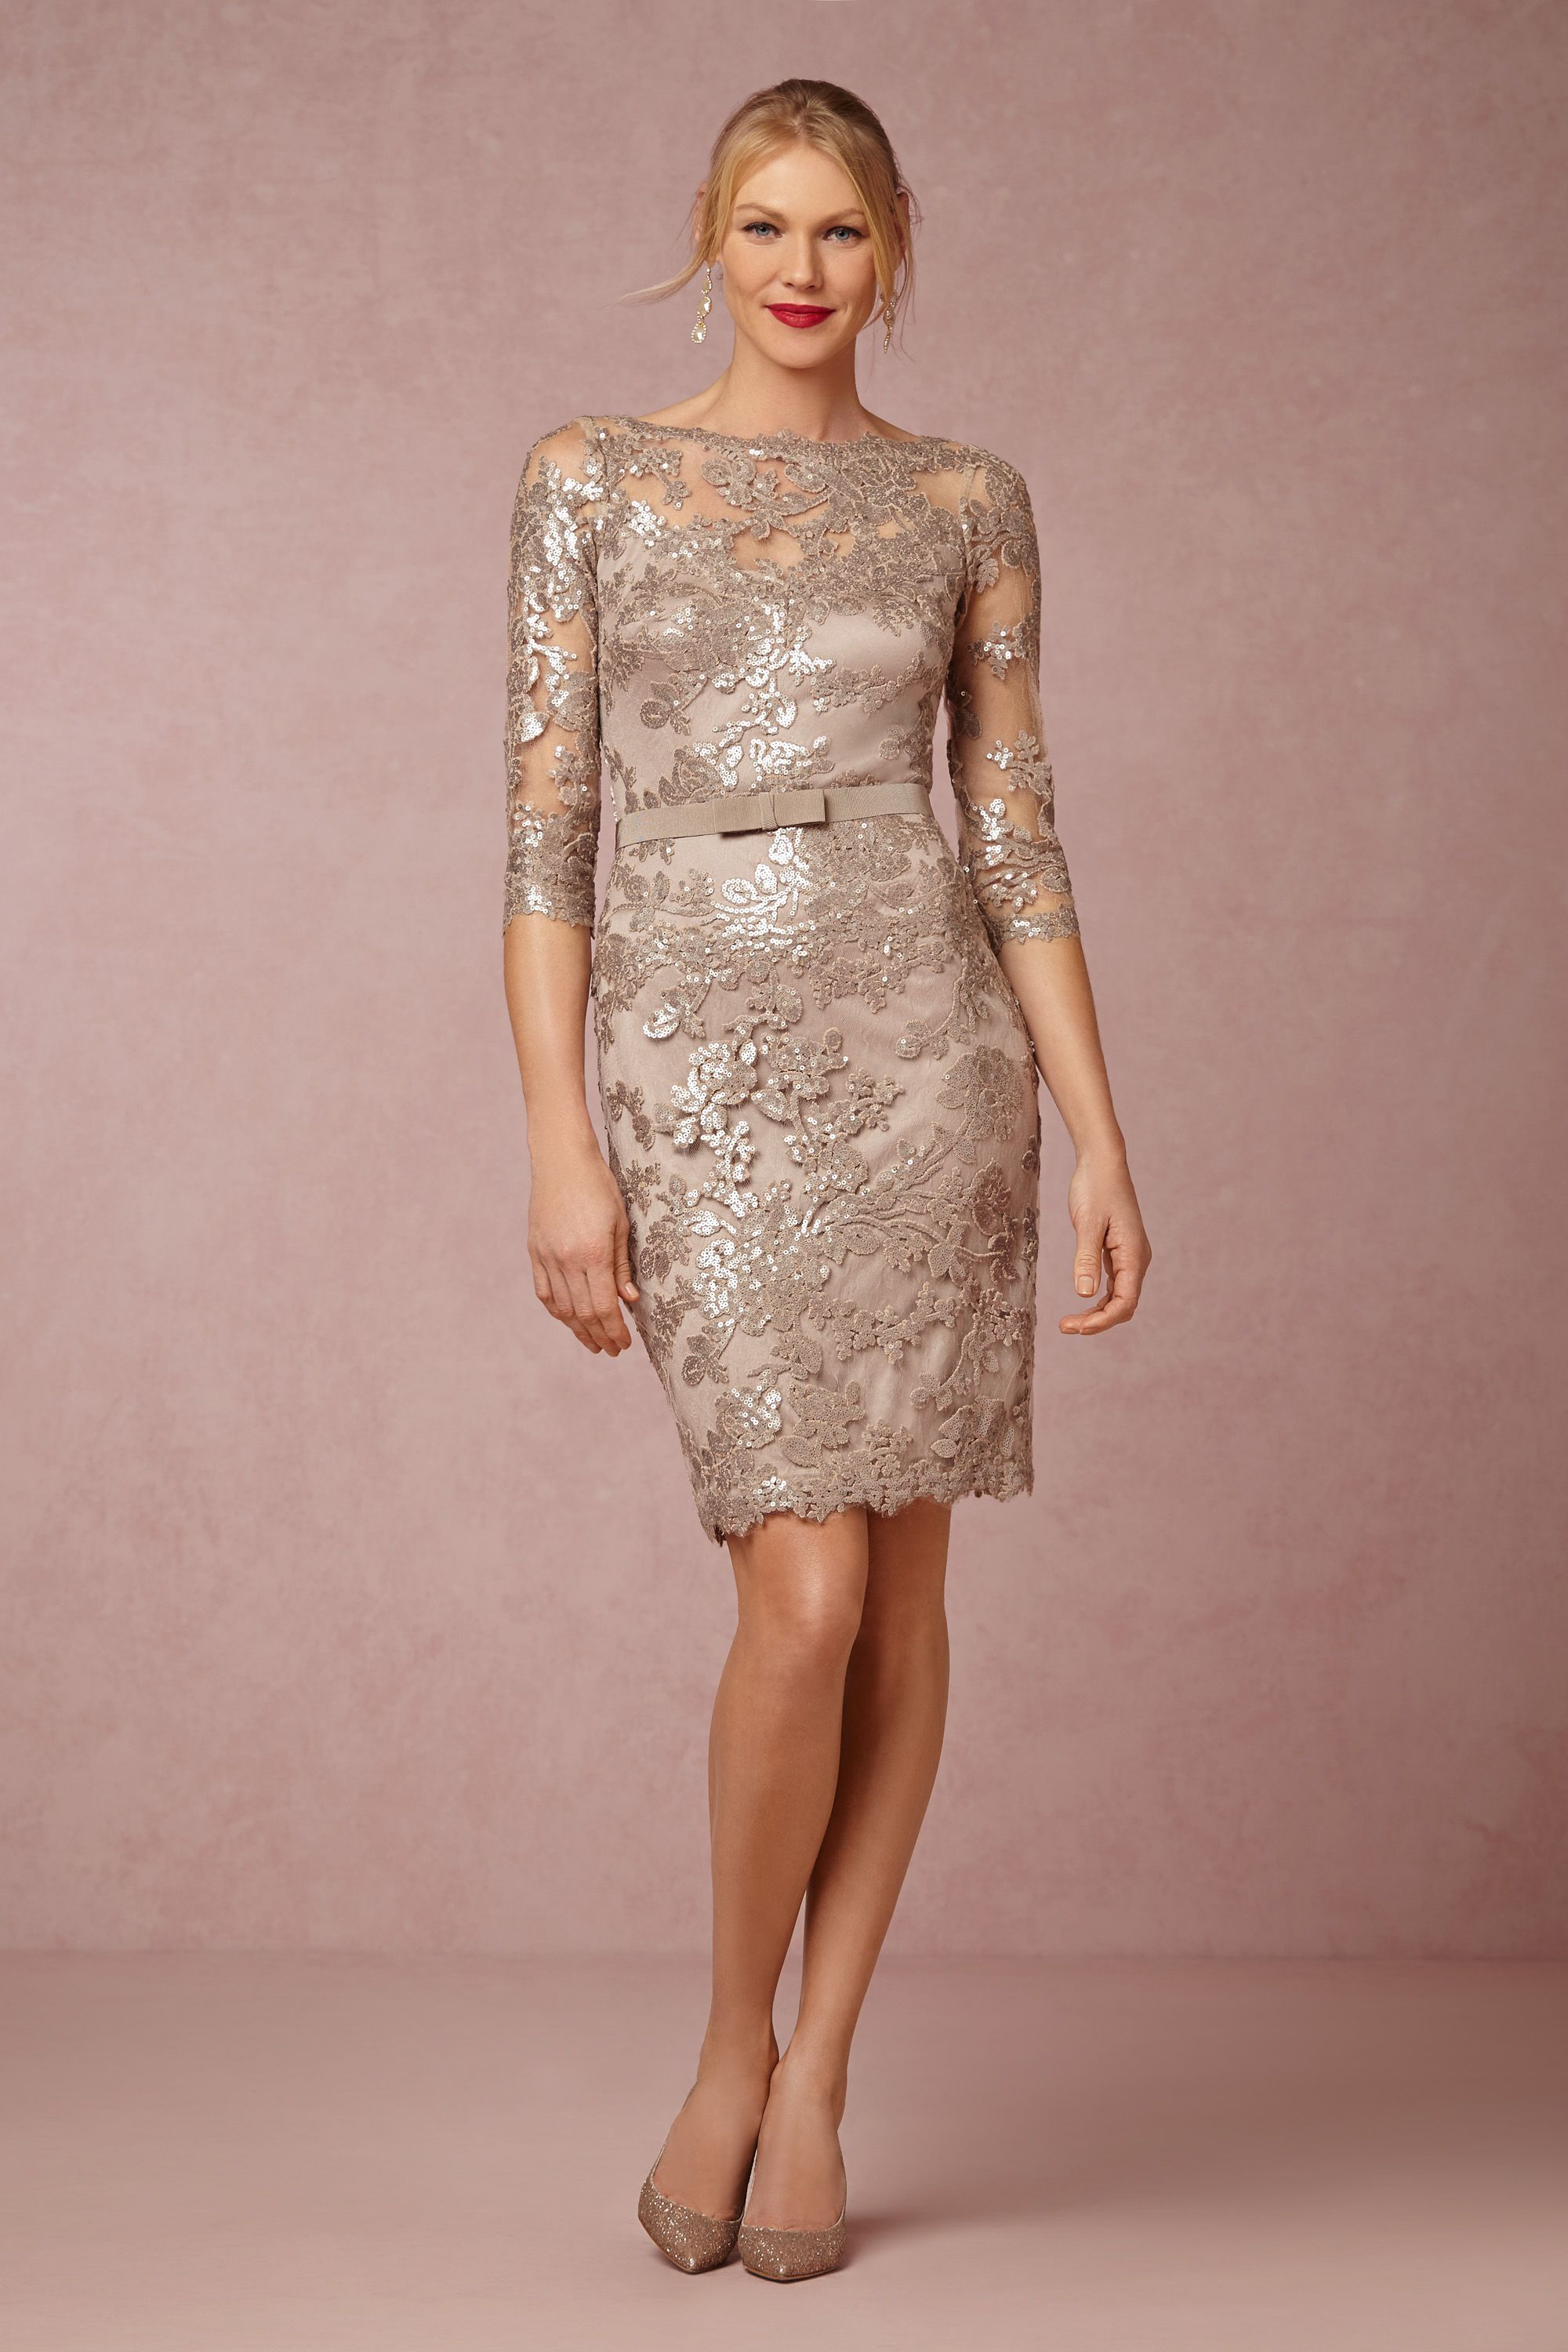 Liv Dress from @BHLDN $100 | sav | Pinterest | Vestidos para mujer ...